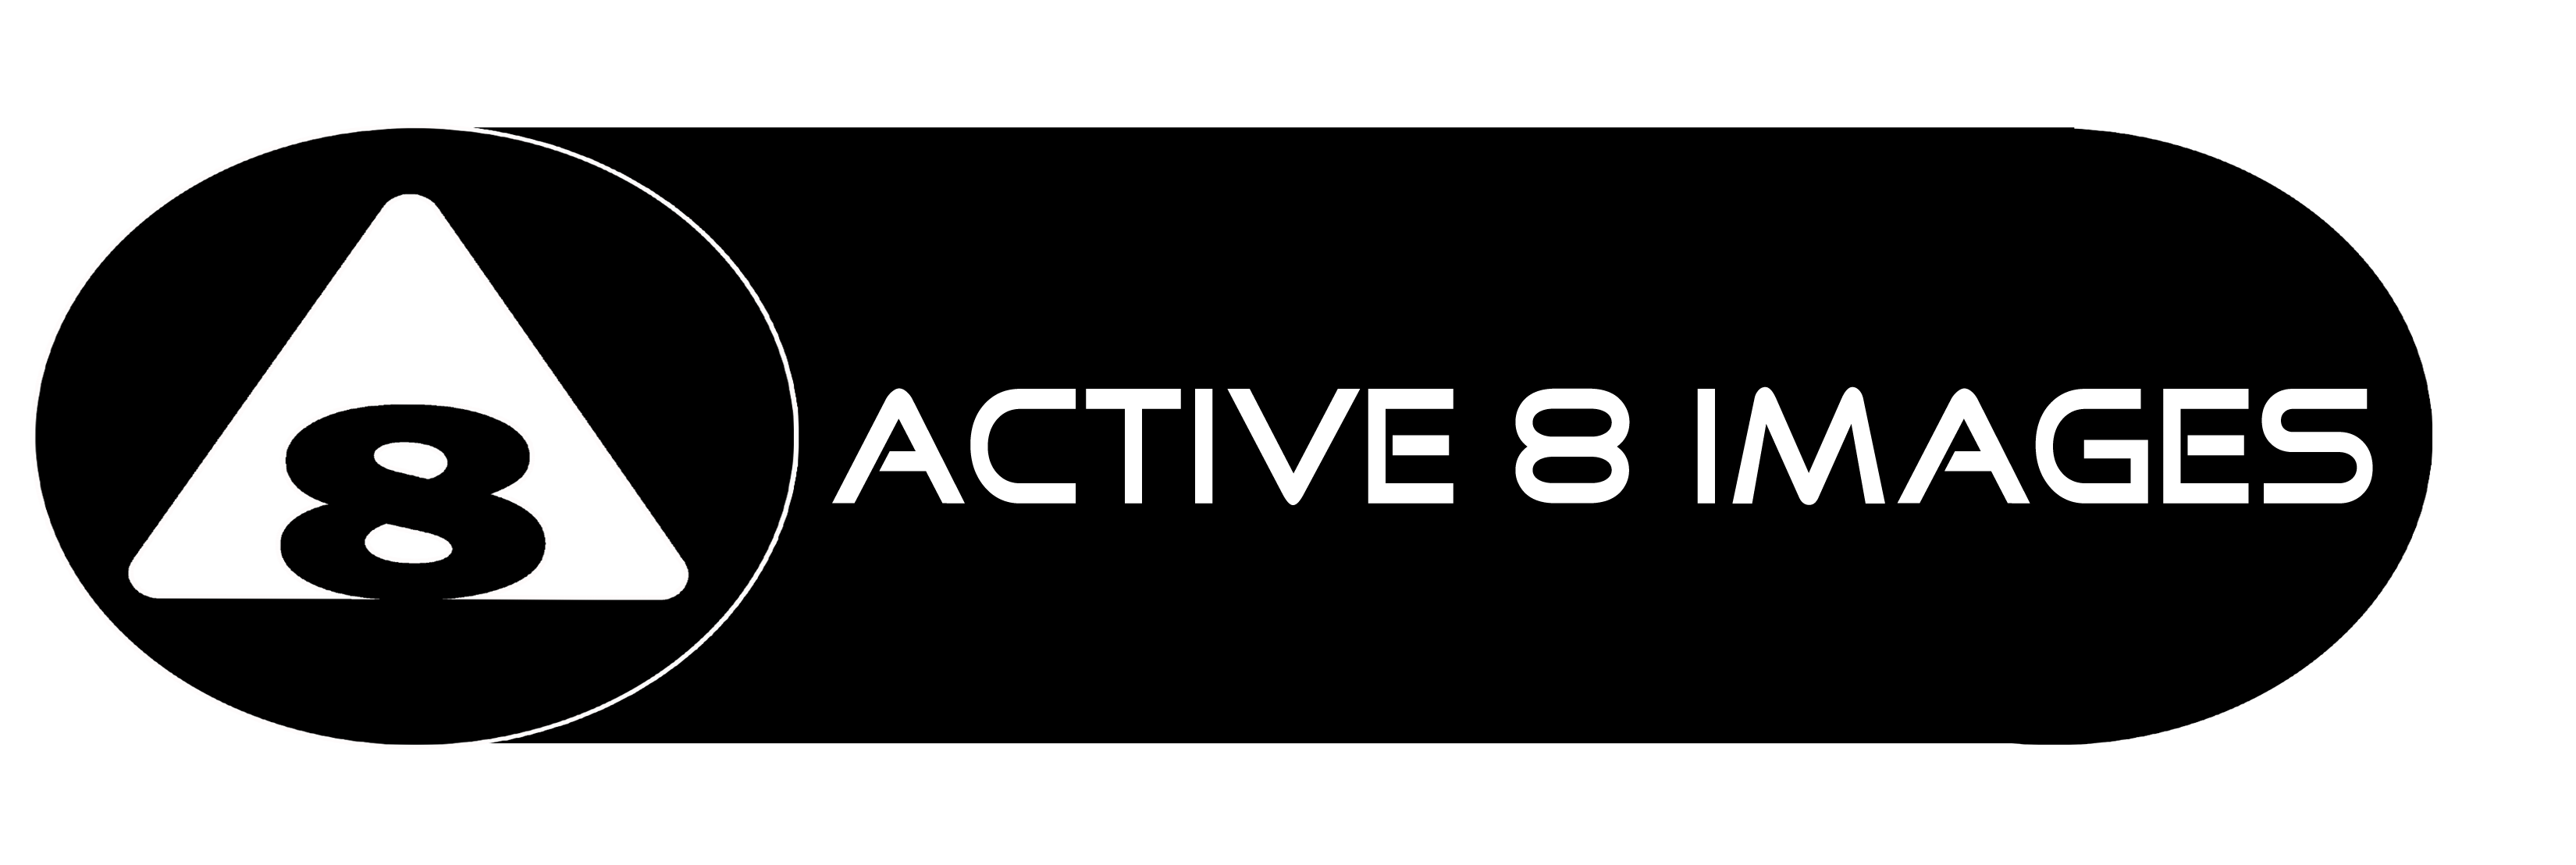 Active 8 Images